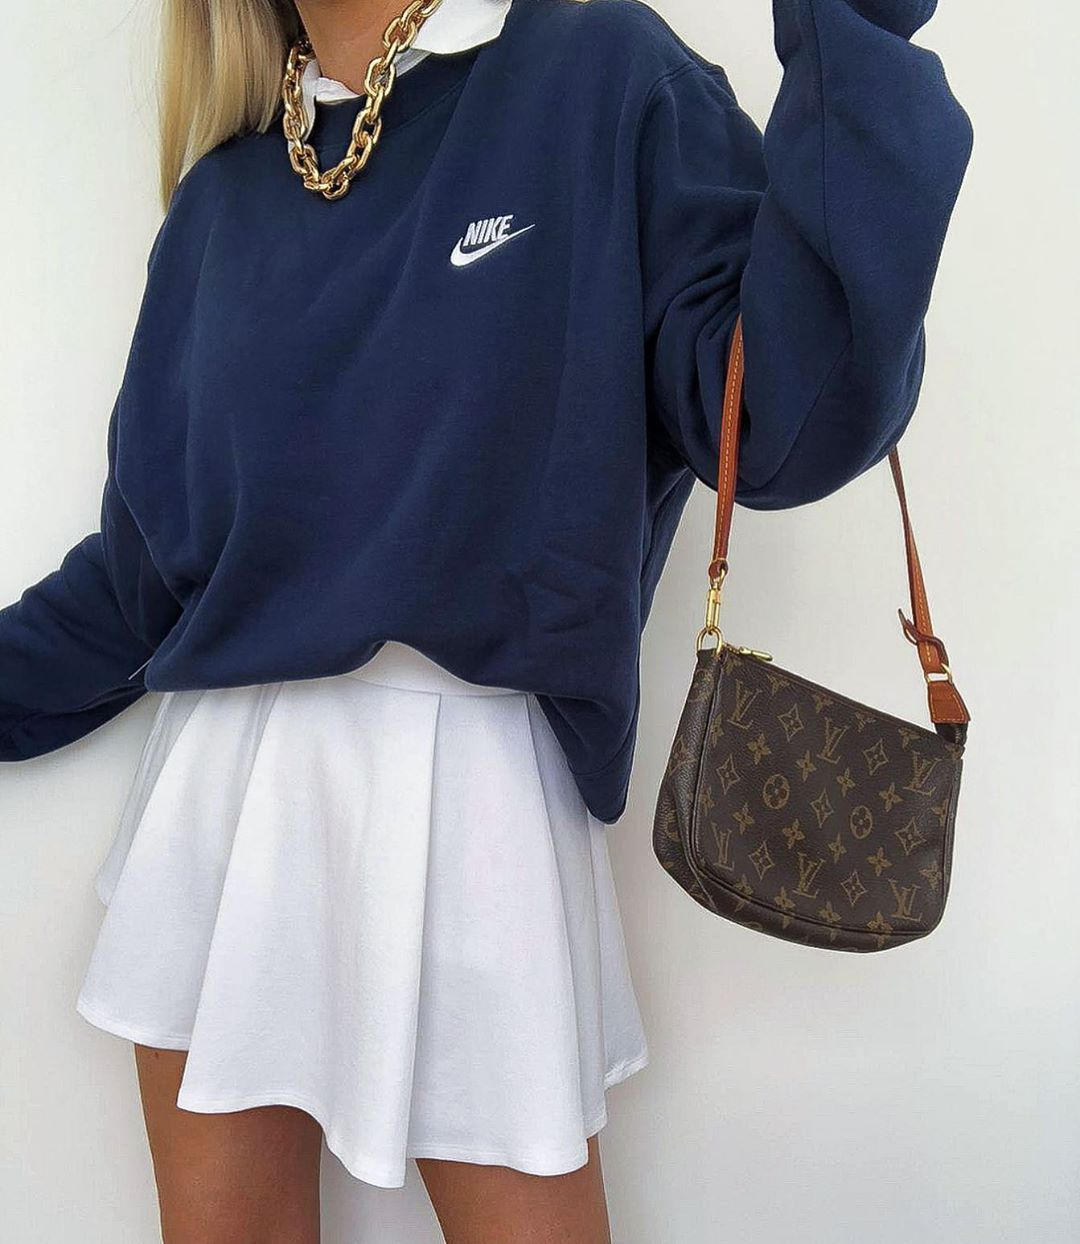 Instagram Outfit White Tennis Skirt With Navy Vintage Nike Sweatshirt Outfit Louis Vuitton Poch In 2020 Tennis Skirt Outfit Fashion Inspo Outfits Cute Casual Outfits